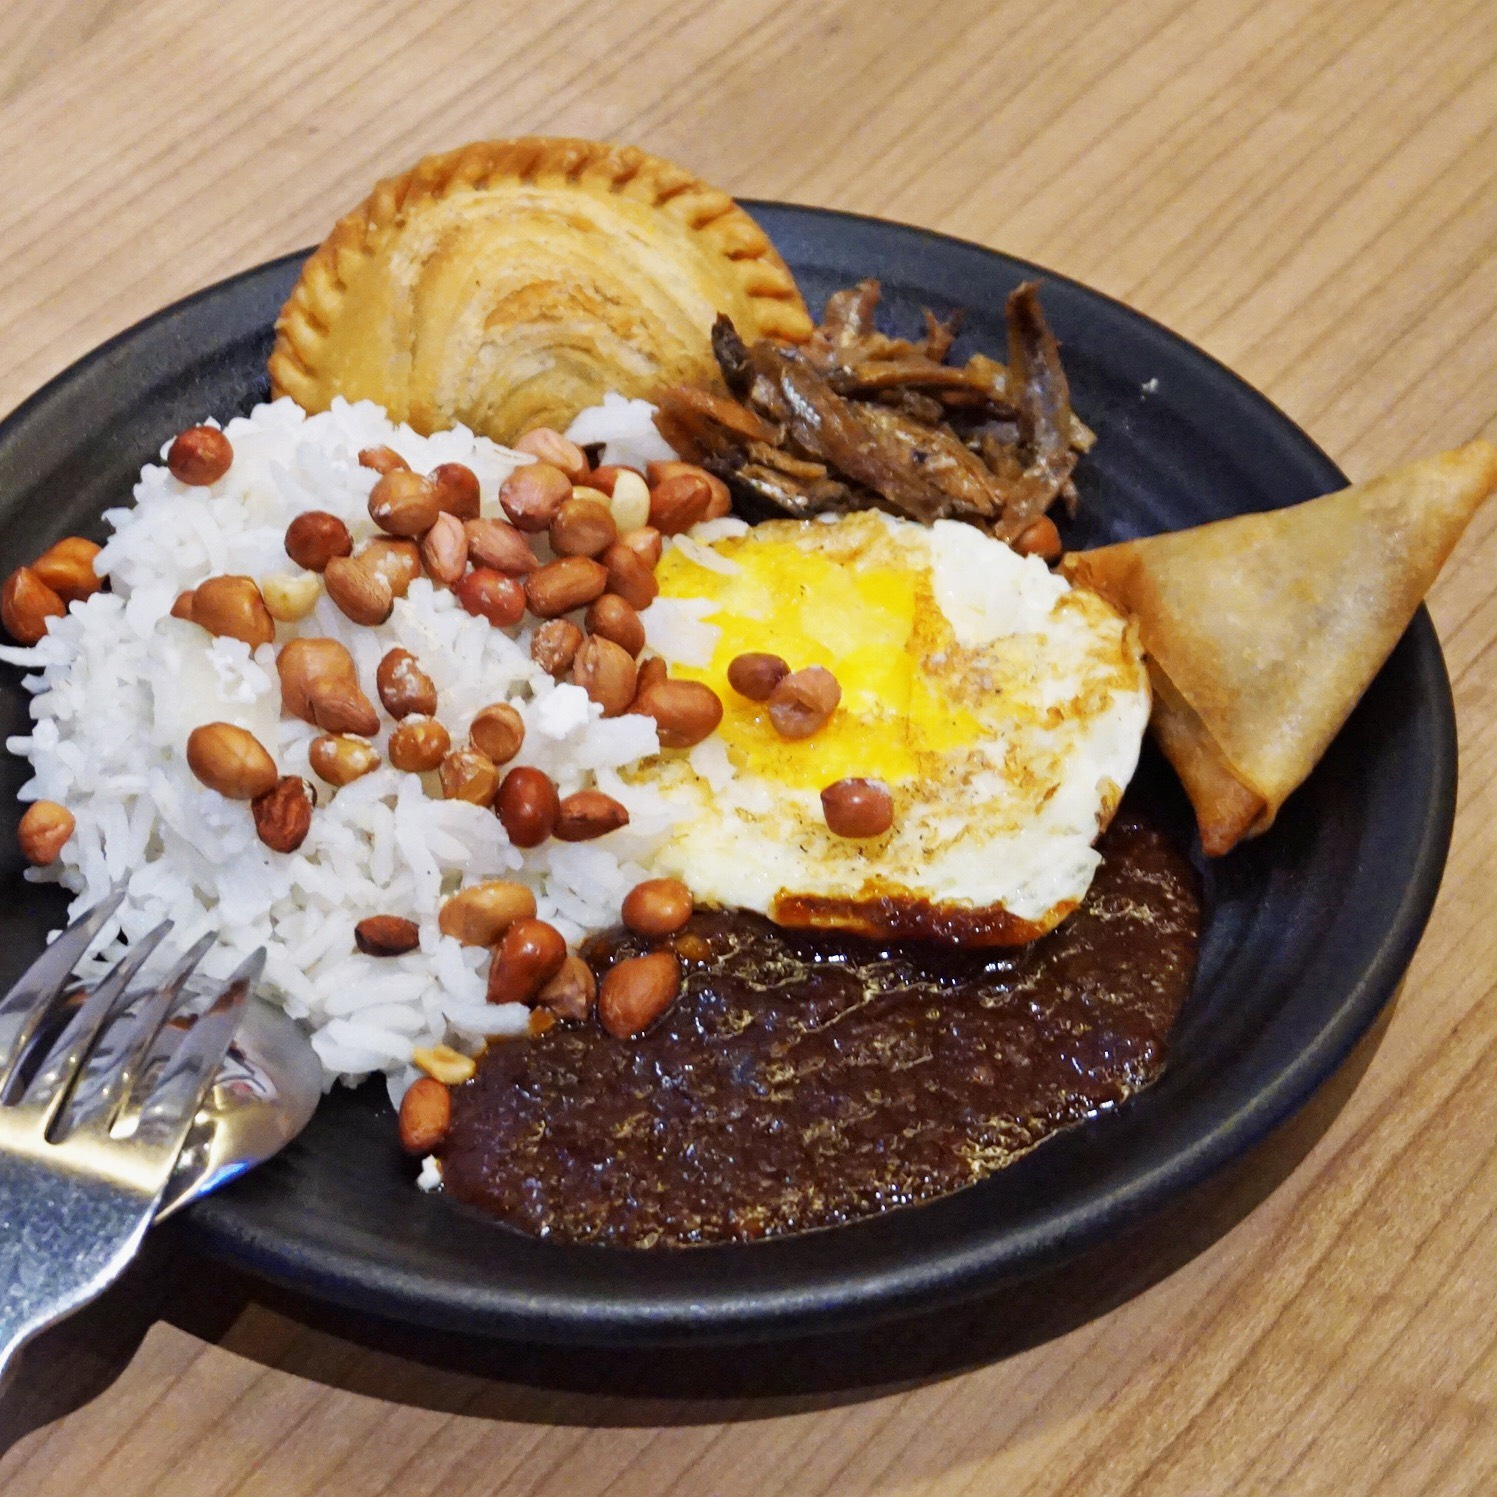 Delish nasi lemak with samosa and curry puff on the side ;-)